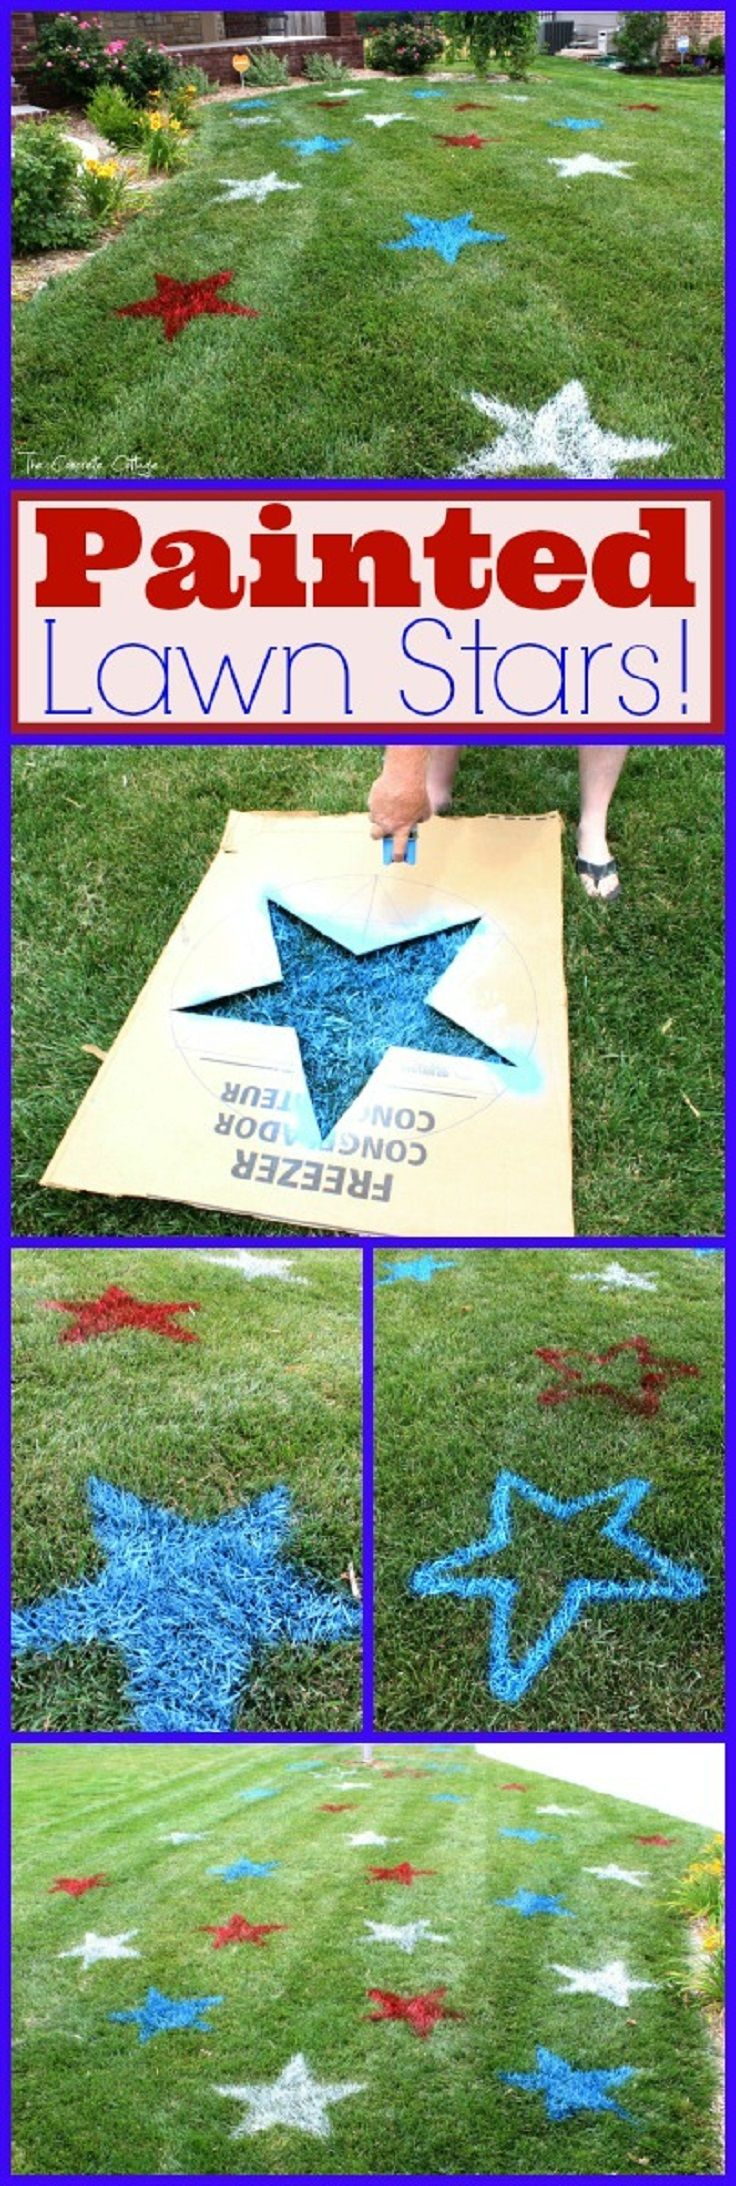 DIY Painted Lawn Stars Tutorial - 17 Show-Stopping 4th of July or Memorial Fay Party Decorations | GleamItUp